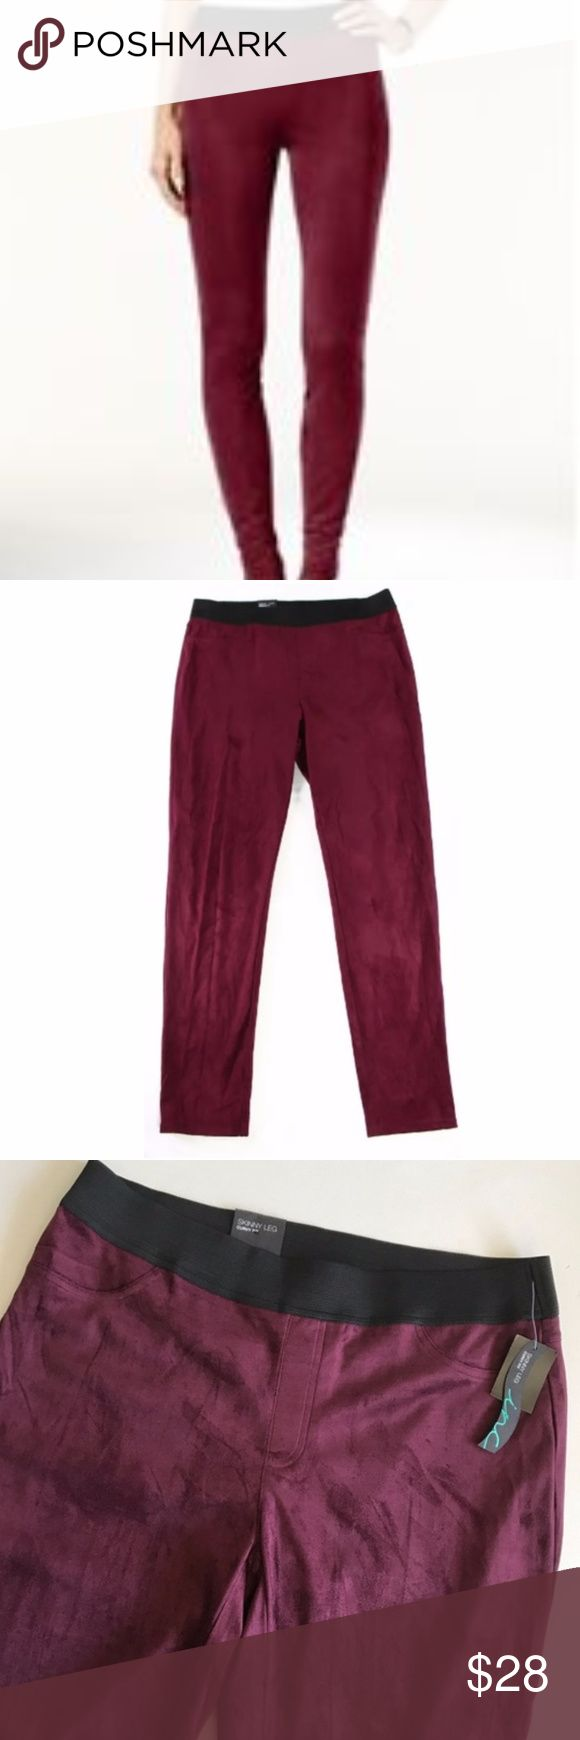 """INC Port Skinny Leg Faux Suede Curvy Fit Legging NC International Concepts Pants - Port Skinny Leg Faux Suede Curvy Fit Legging Regular fit, pull on with a skinny leg.  Waistband is elasticized. Polyester/Spandex material. Pockets are only in the back. Color is closest to a burgundy or cabernet wine.   Measurements: Inseam: approx. 31"""" Rise: approx. 9.5"""" INC International Concepts Pants Leggings"""